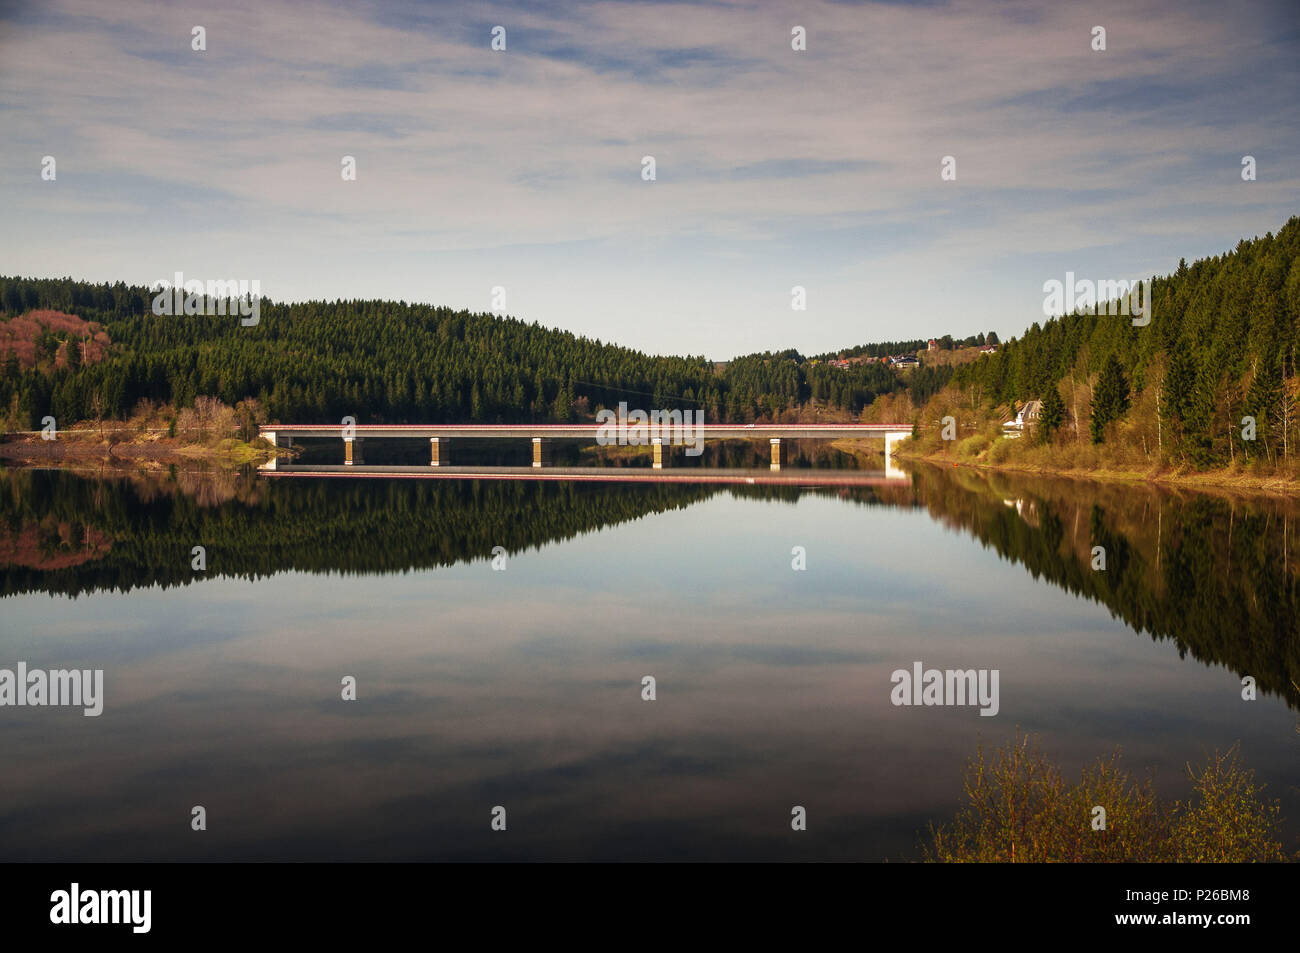 Bridge road over a mountain lake oker dam with perfect water reflections. Okertalsperre, Okerstausee, National Park Harz in Germany - Stock Image